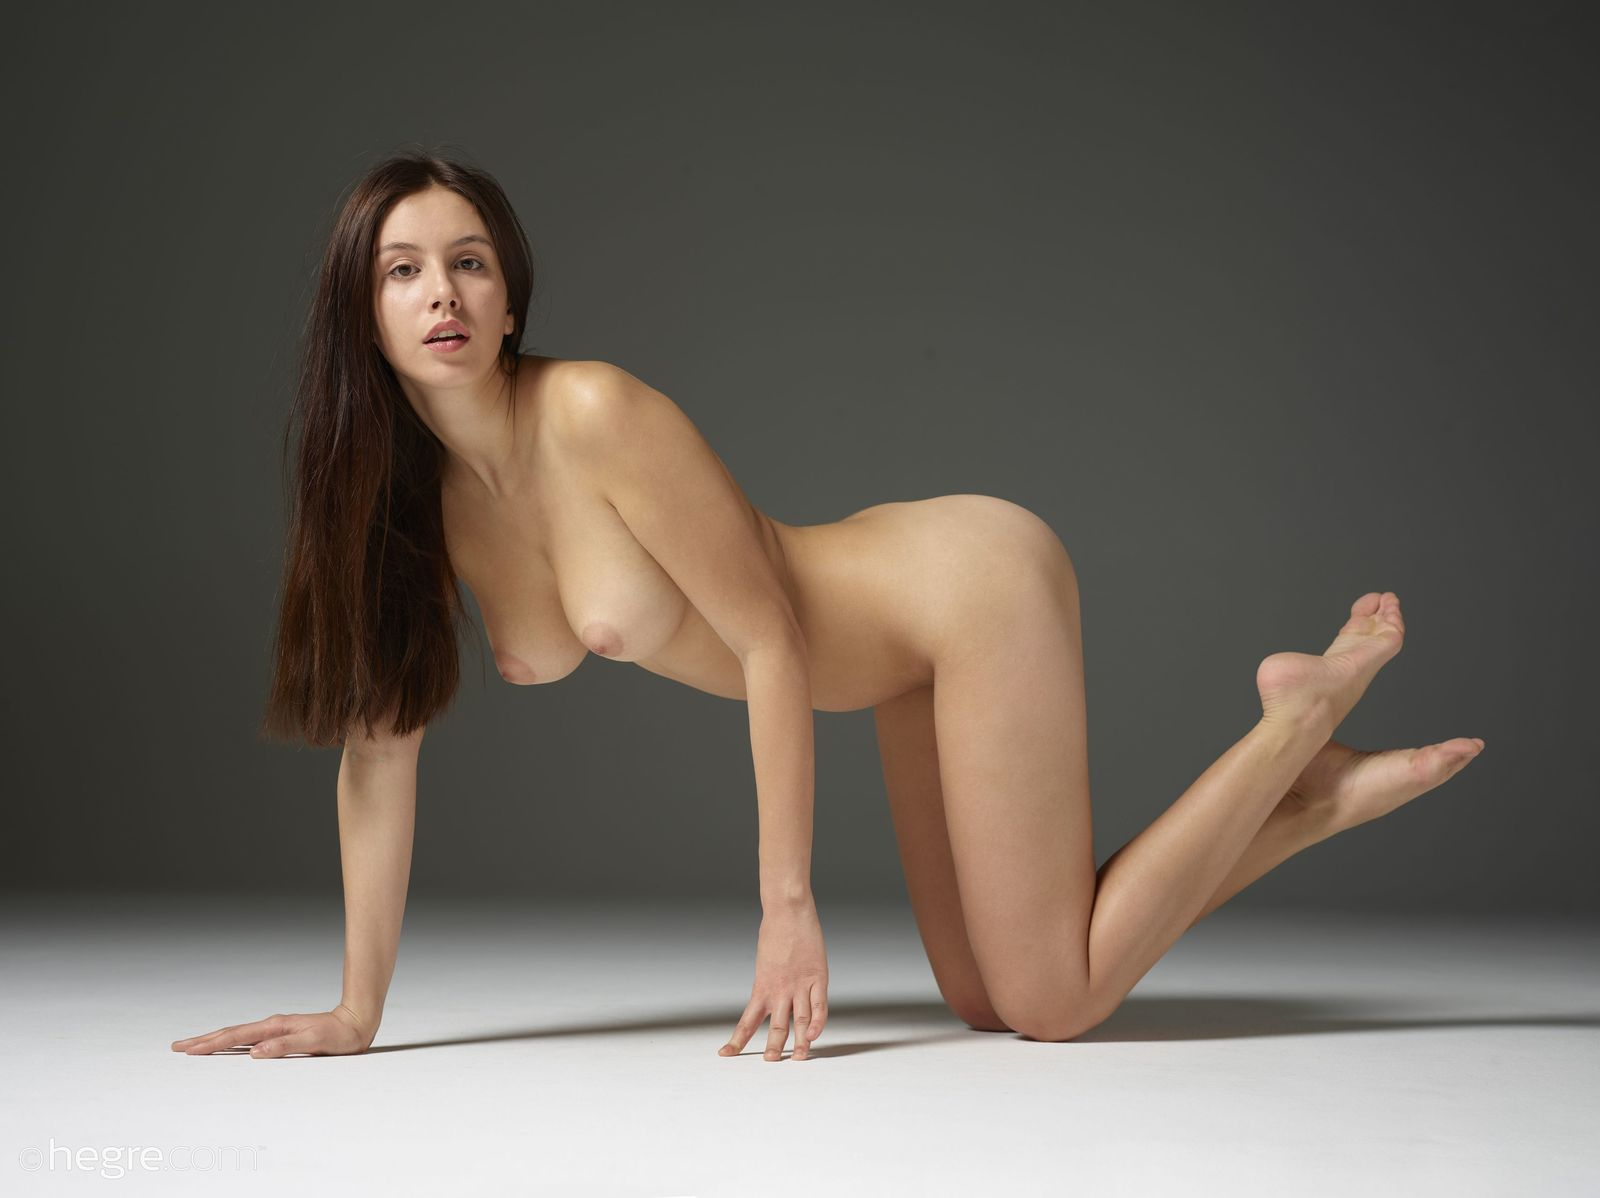 Alisa a nude picture